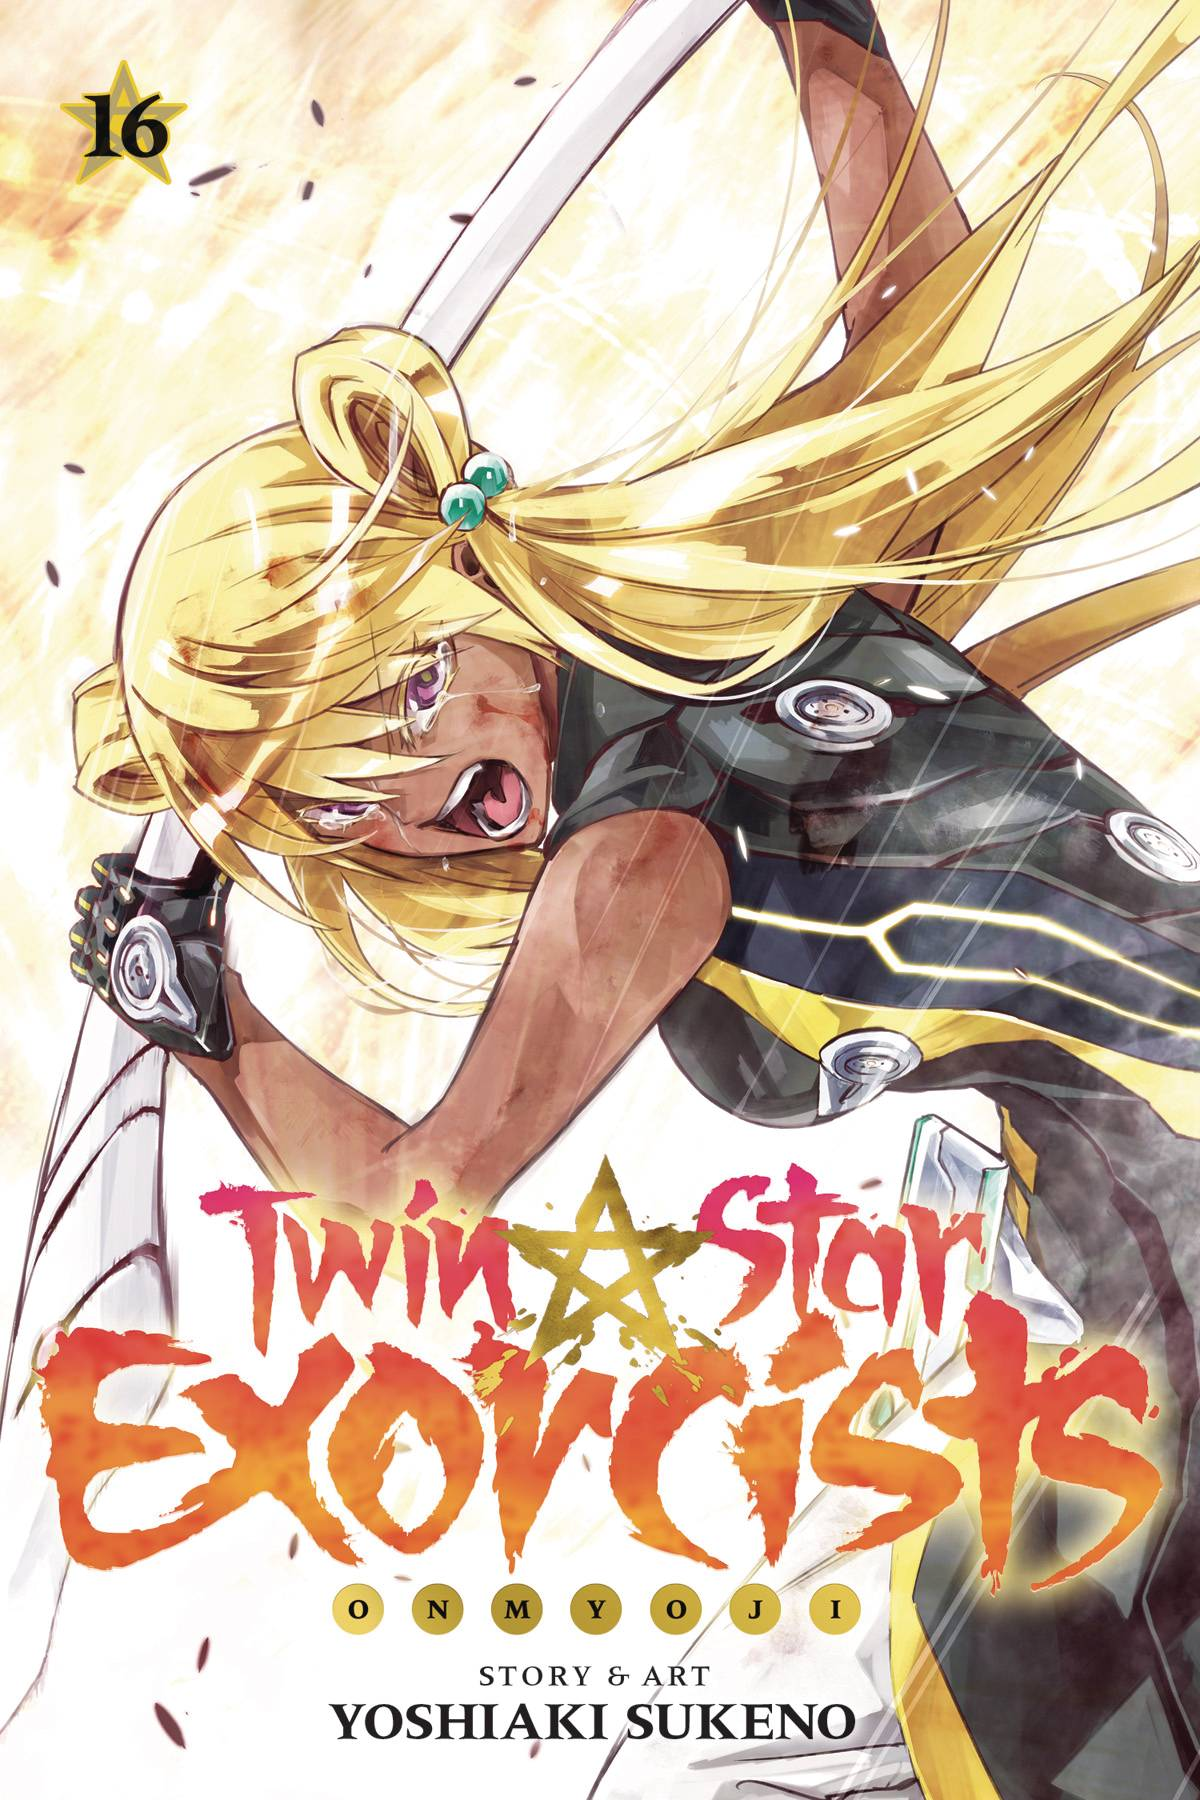 TWIN STAR EXORCISTS ONMYOJI GN VOL 16